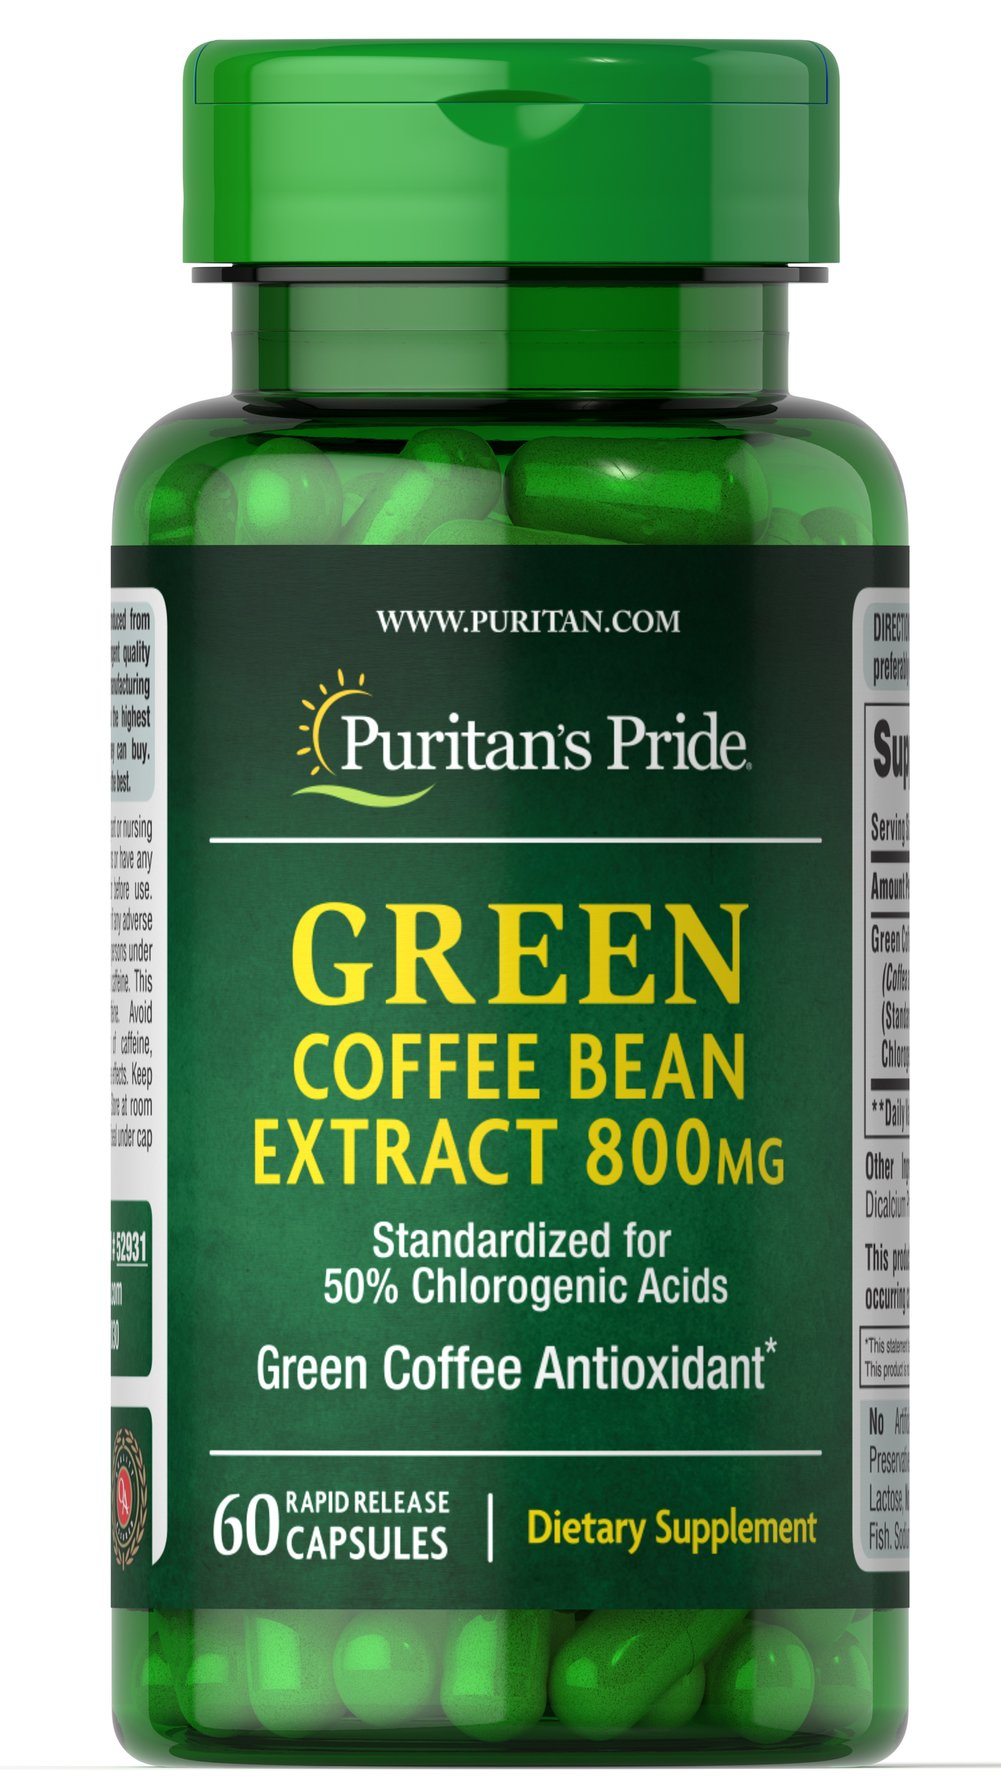 Green Coffee Bean Extract 800 mg Green Coffee Bean extract is made from coffee beans that are not roasted. This unique extract provides 45 percent chlorogenic acids. Green coffee is a major source of chlorogenic acids in nature and contains antioxidant properties.** Includes 60 rapid release capsules. 60 Capsules 800 mg $20.39